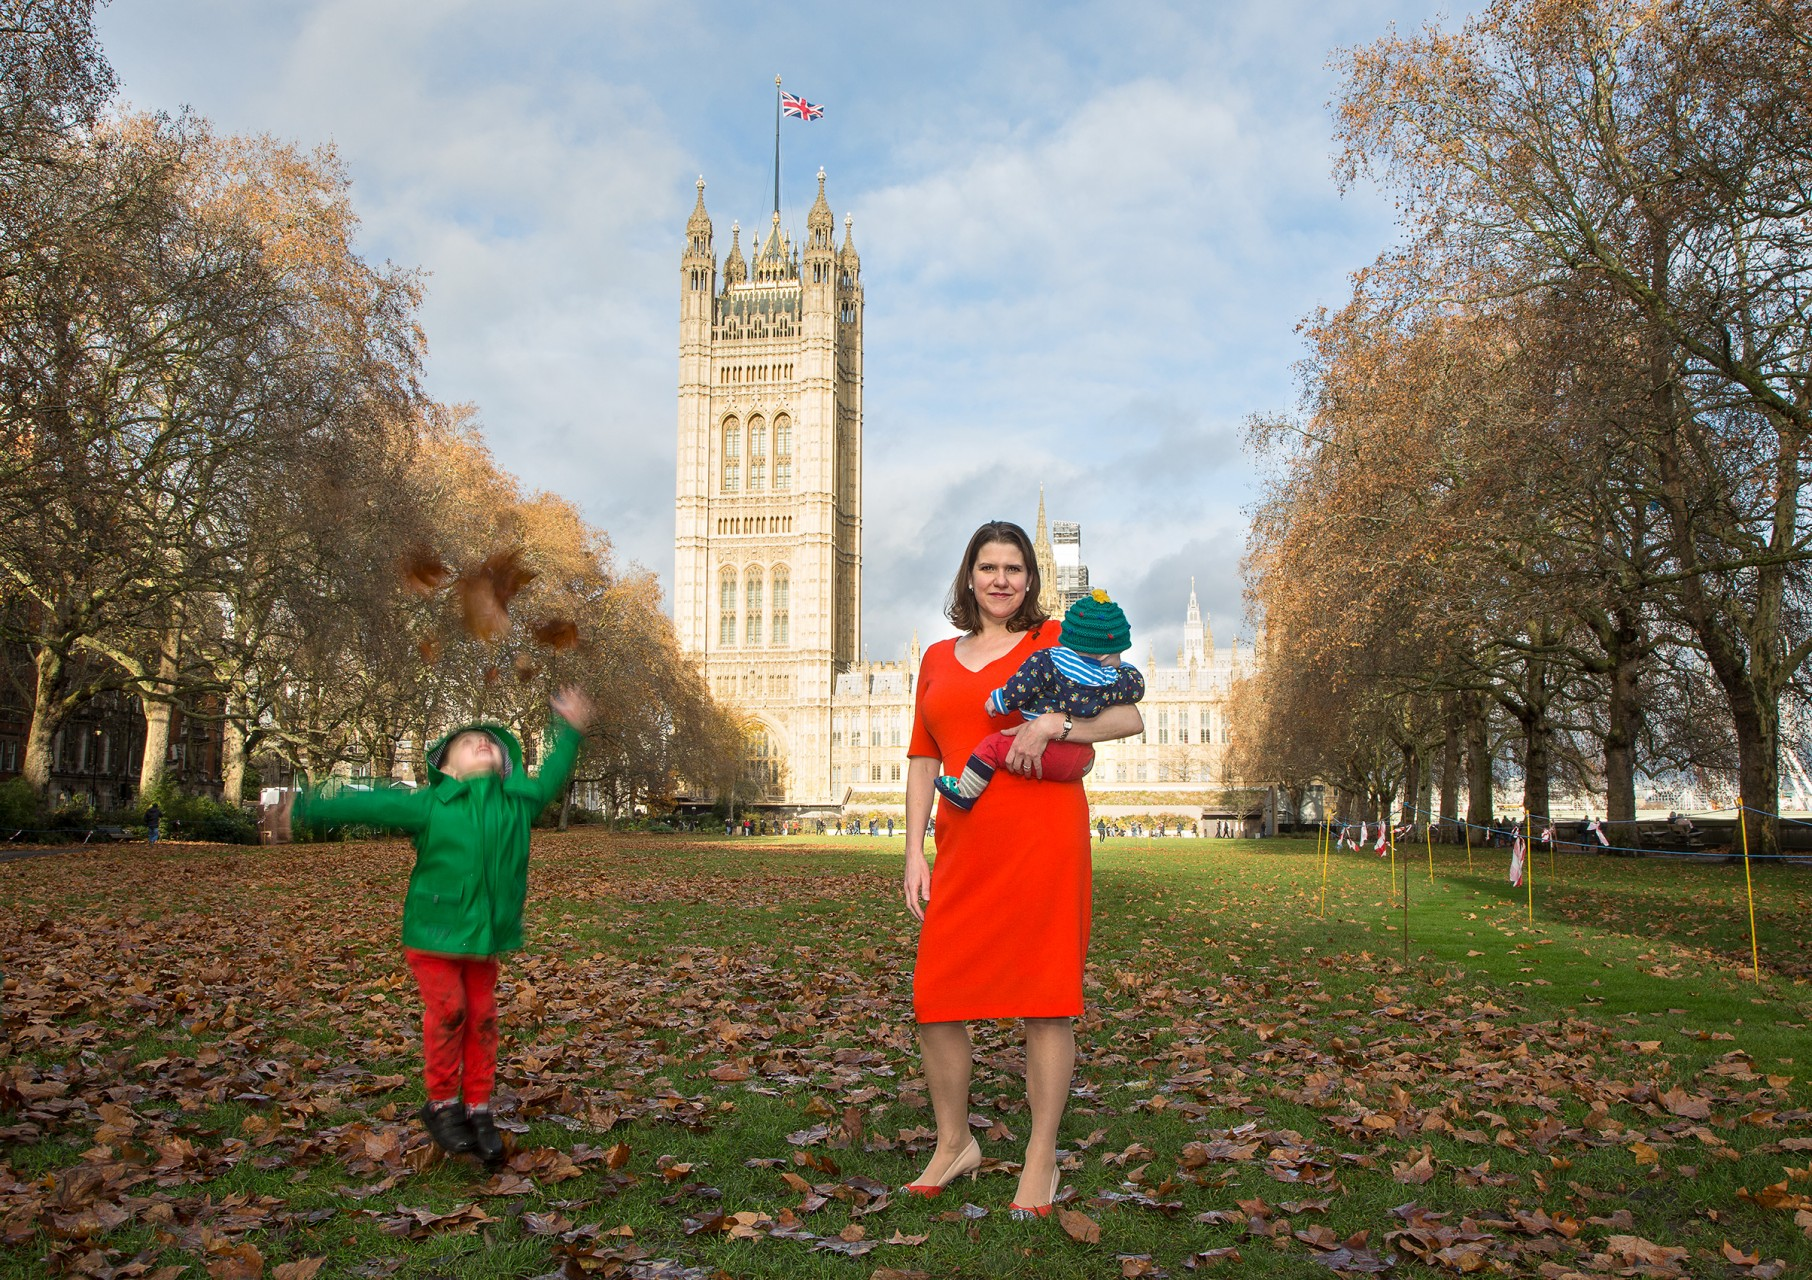 Jo Swinson - Former Leader of the Liberal Democrats